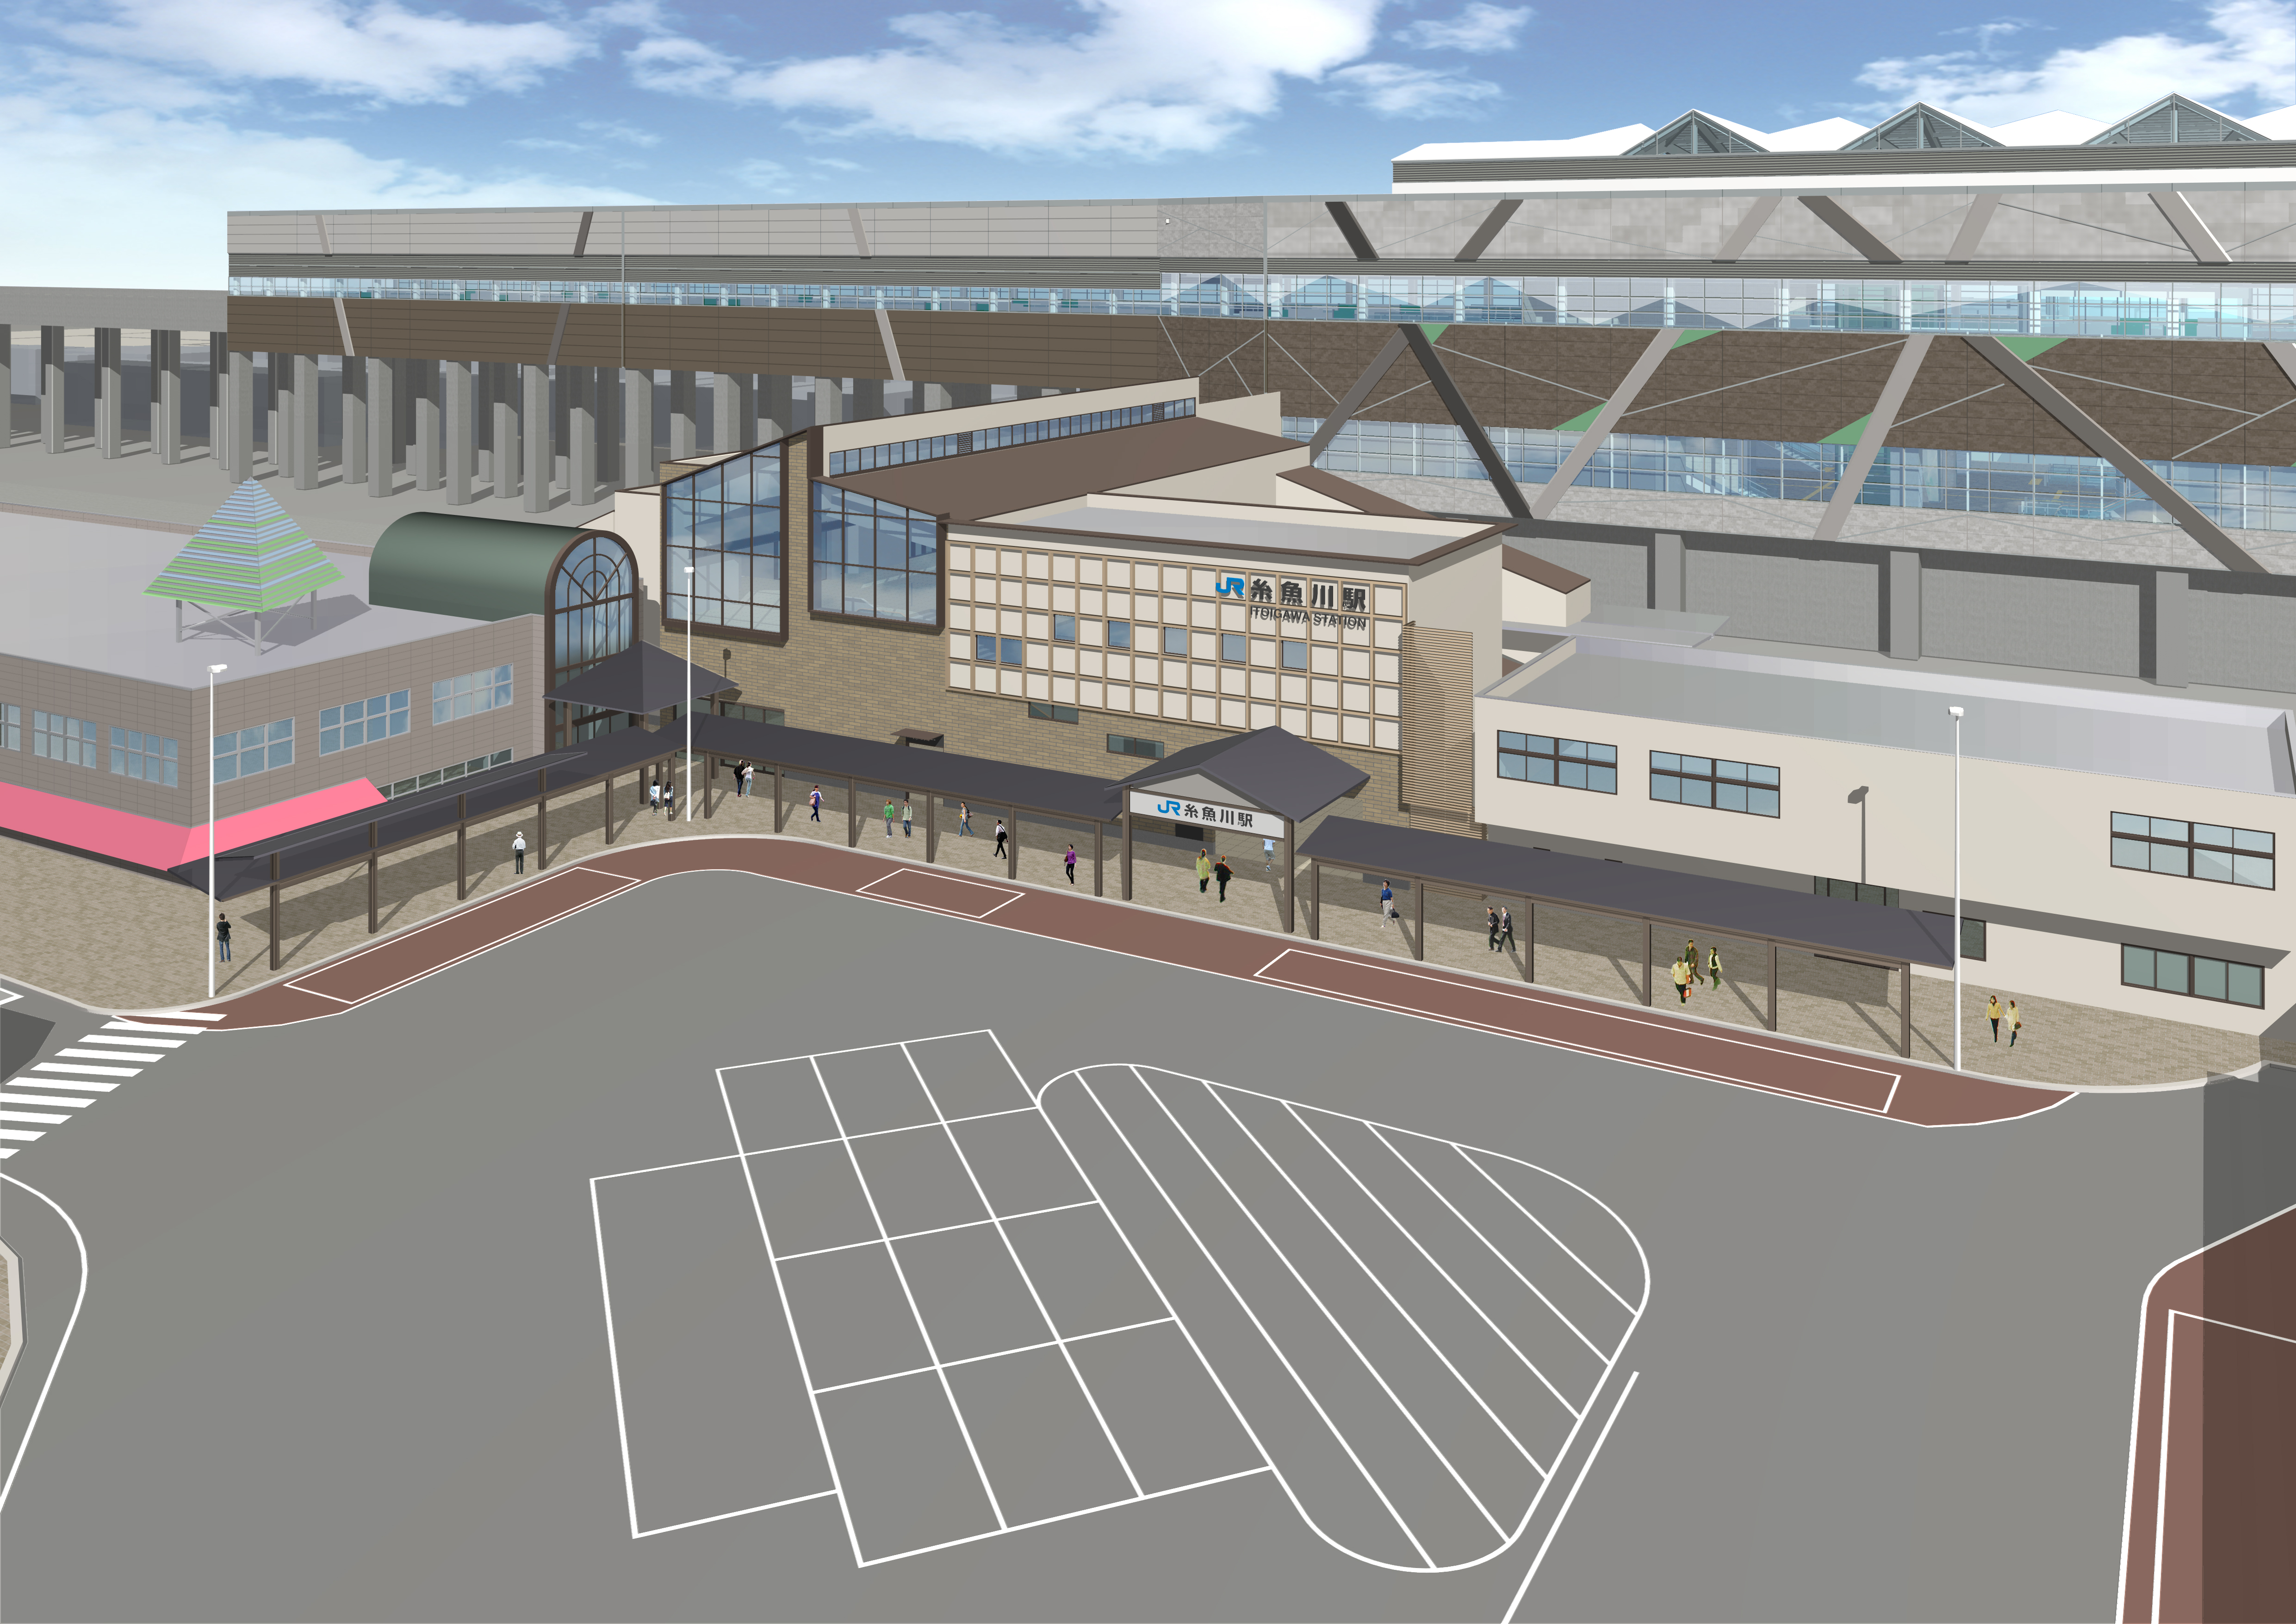 Artist's rendition of the completed North Gate Arcade.